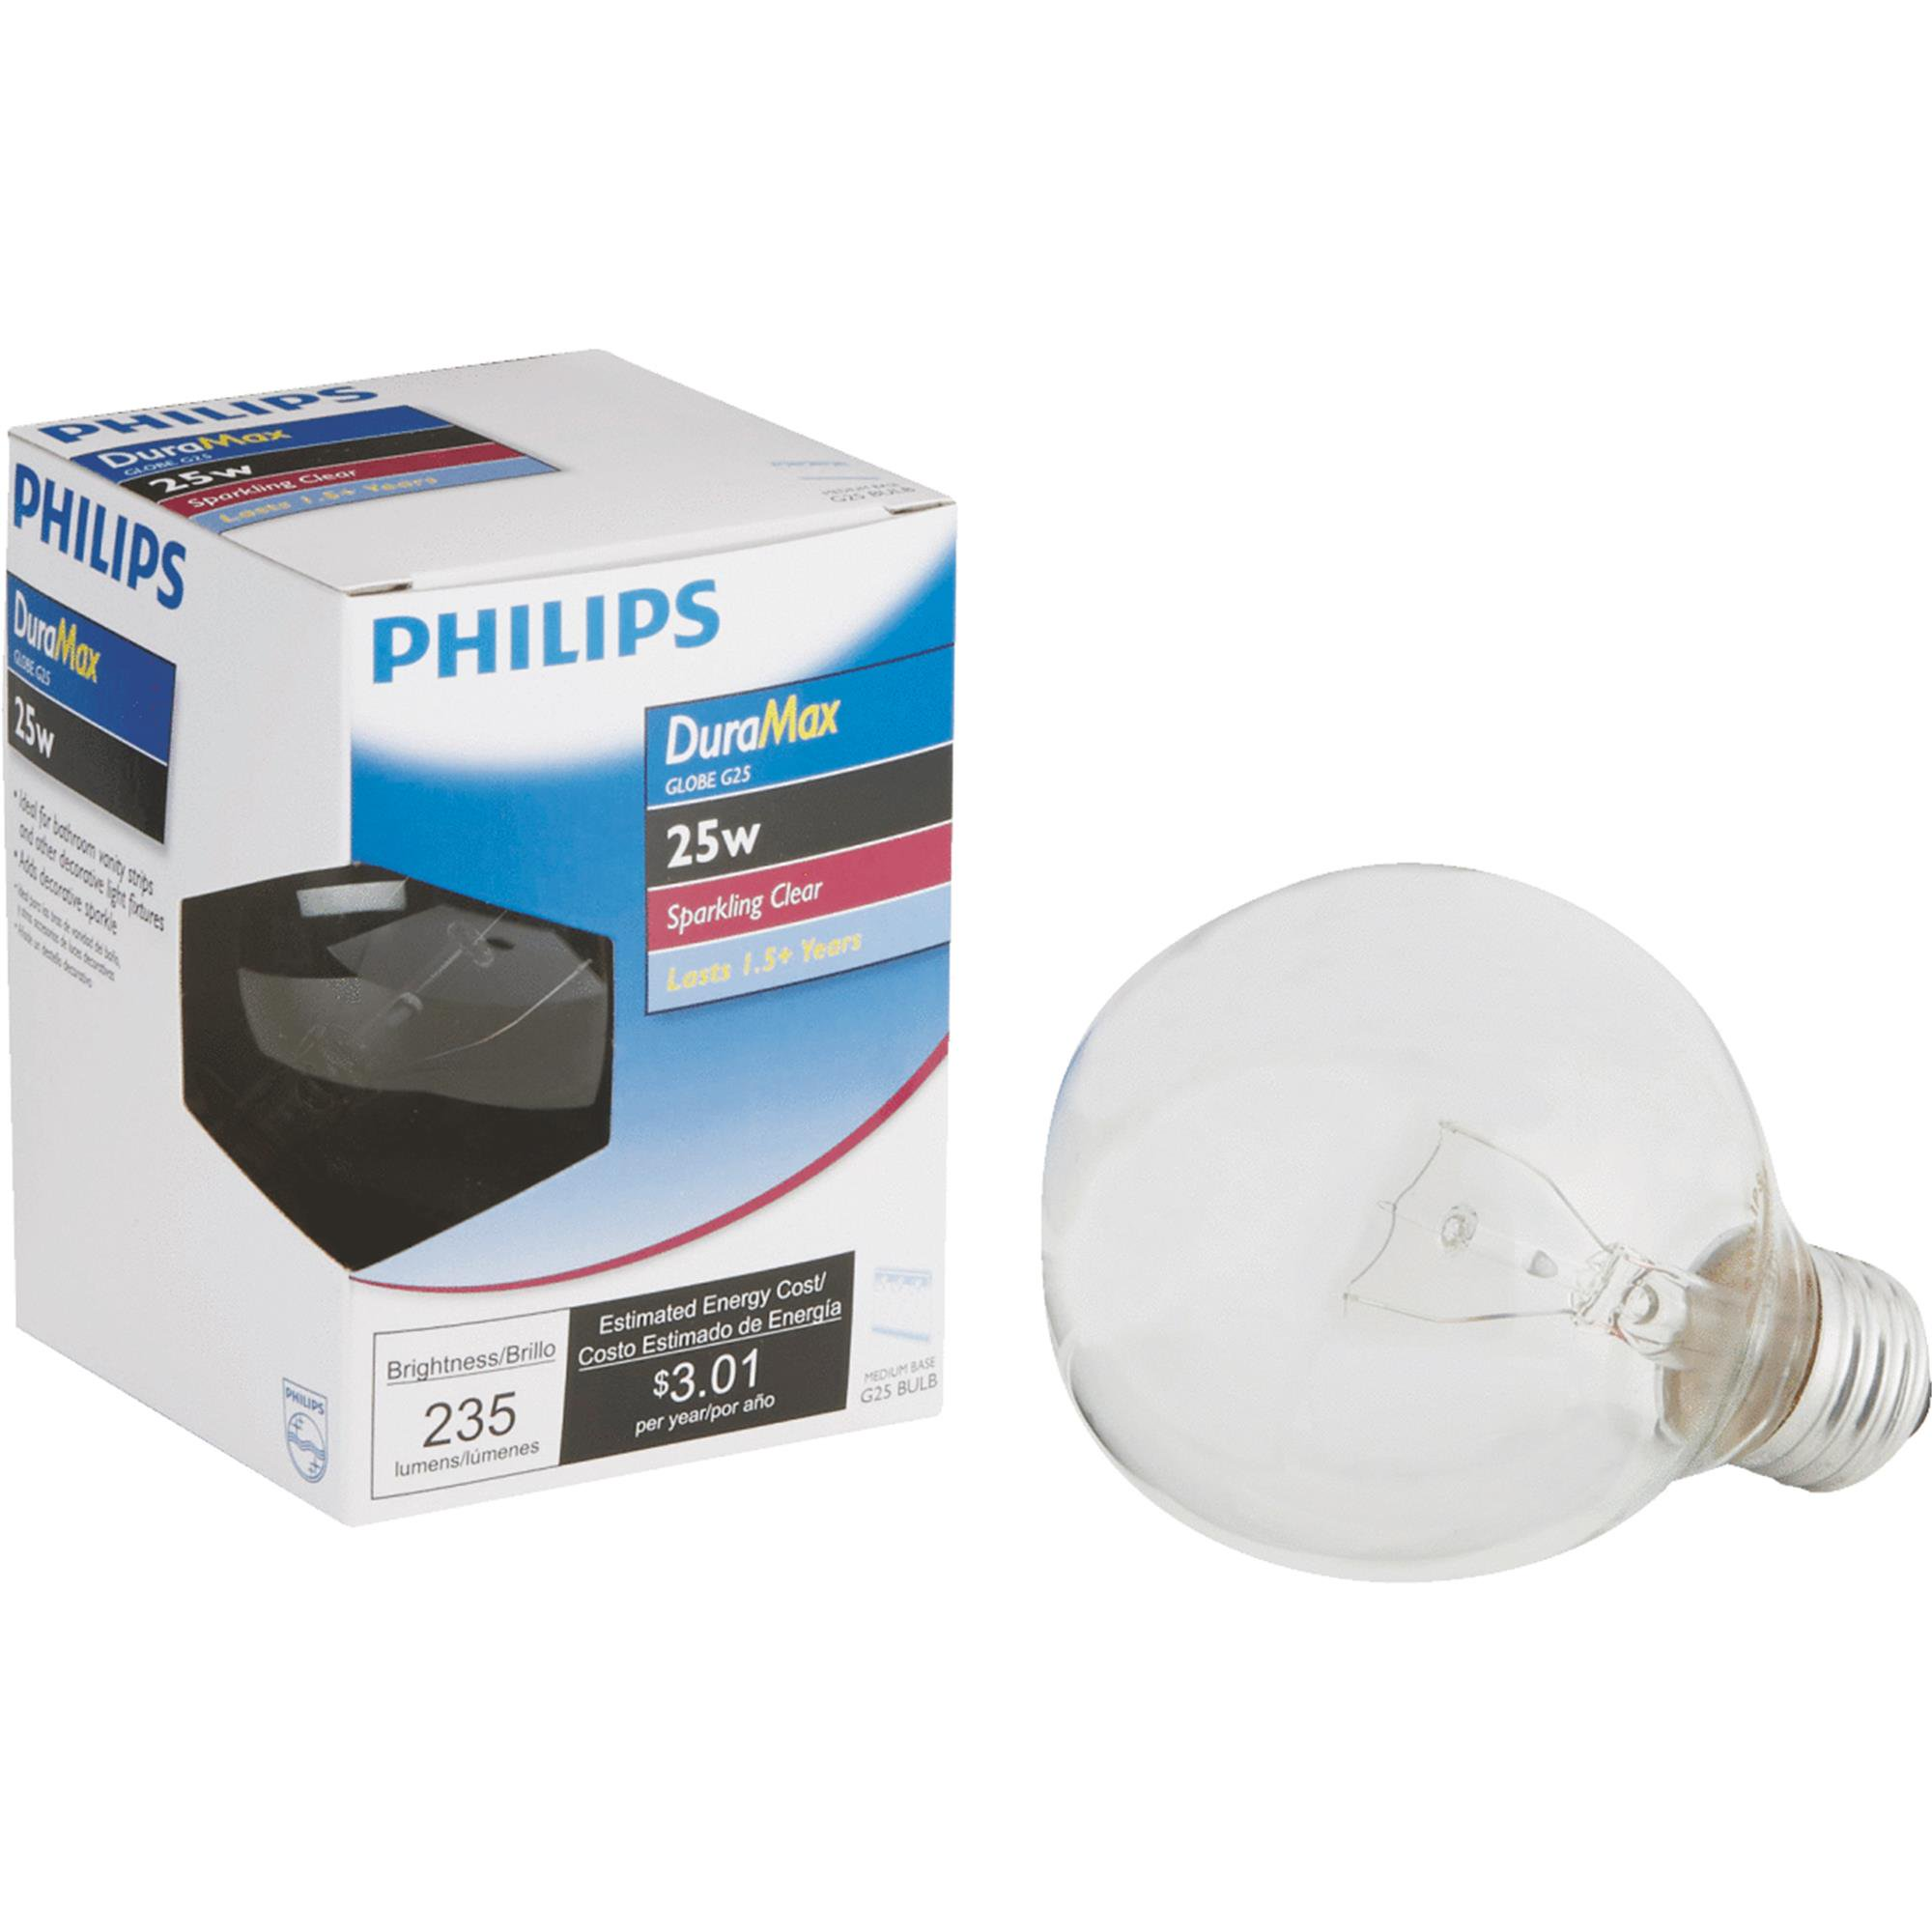 Philips DuraMax Medium G25 Globe Light Bulb